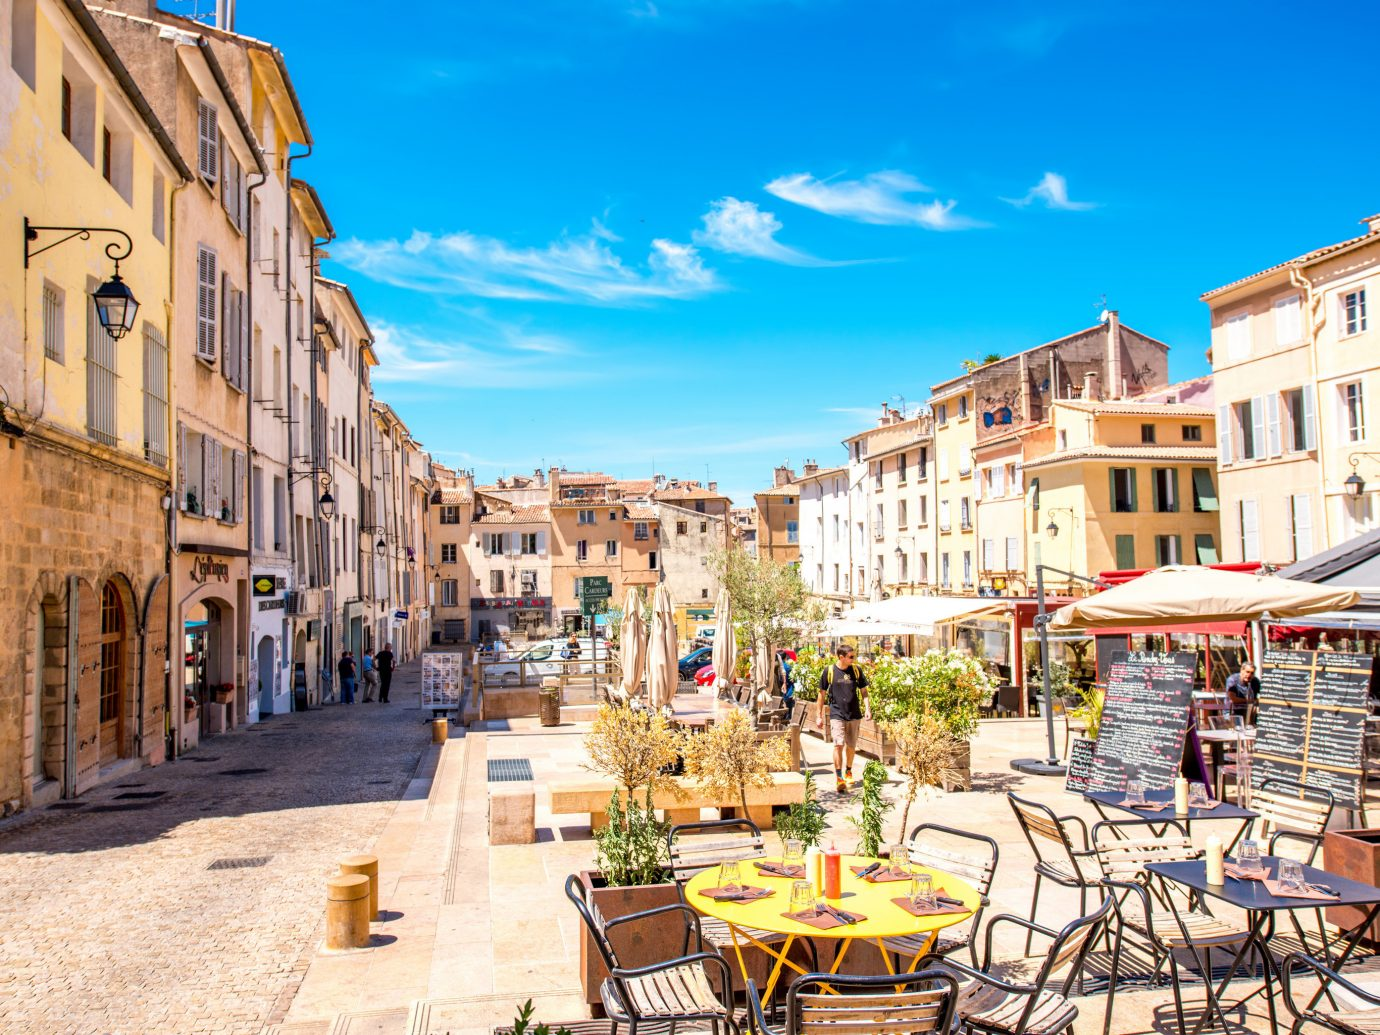 Road Trips Trip Ideas building outdoor ground Town scene neighbourhood City sky mixed use street tourism marketplace Downtown vacation facade town square way